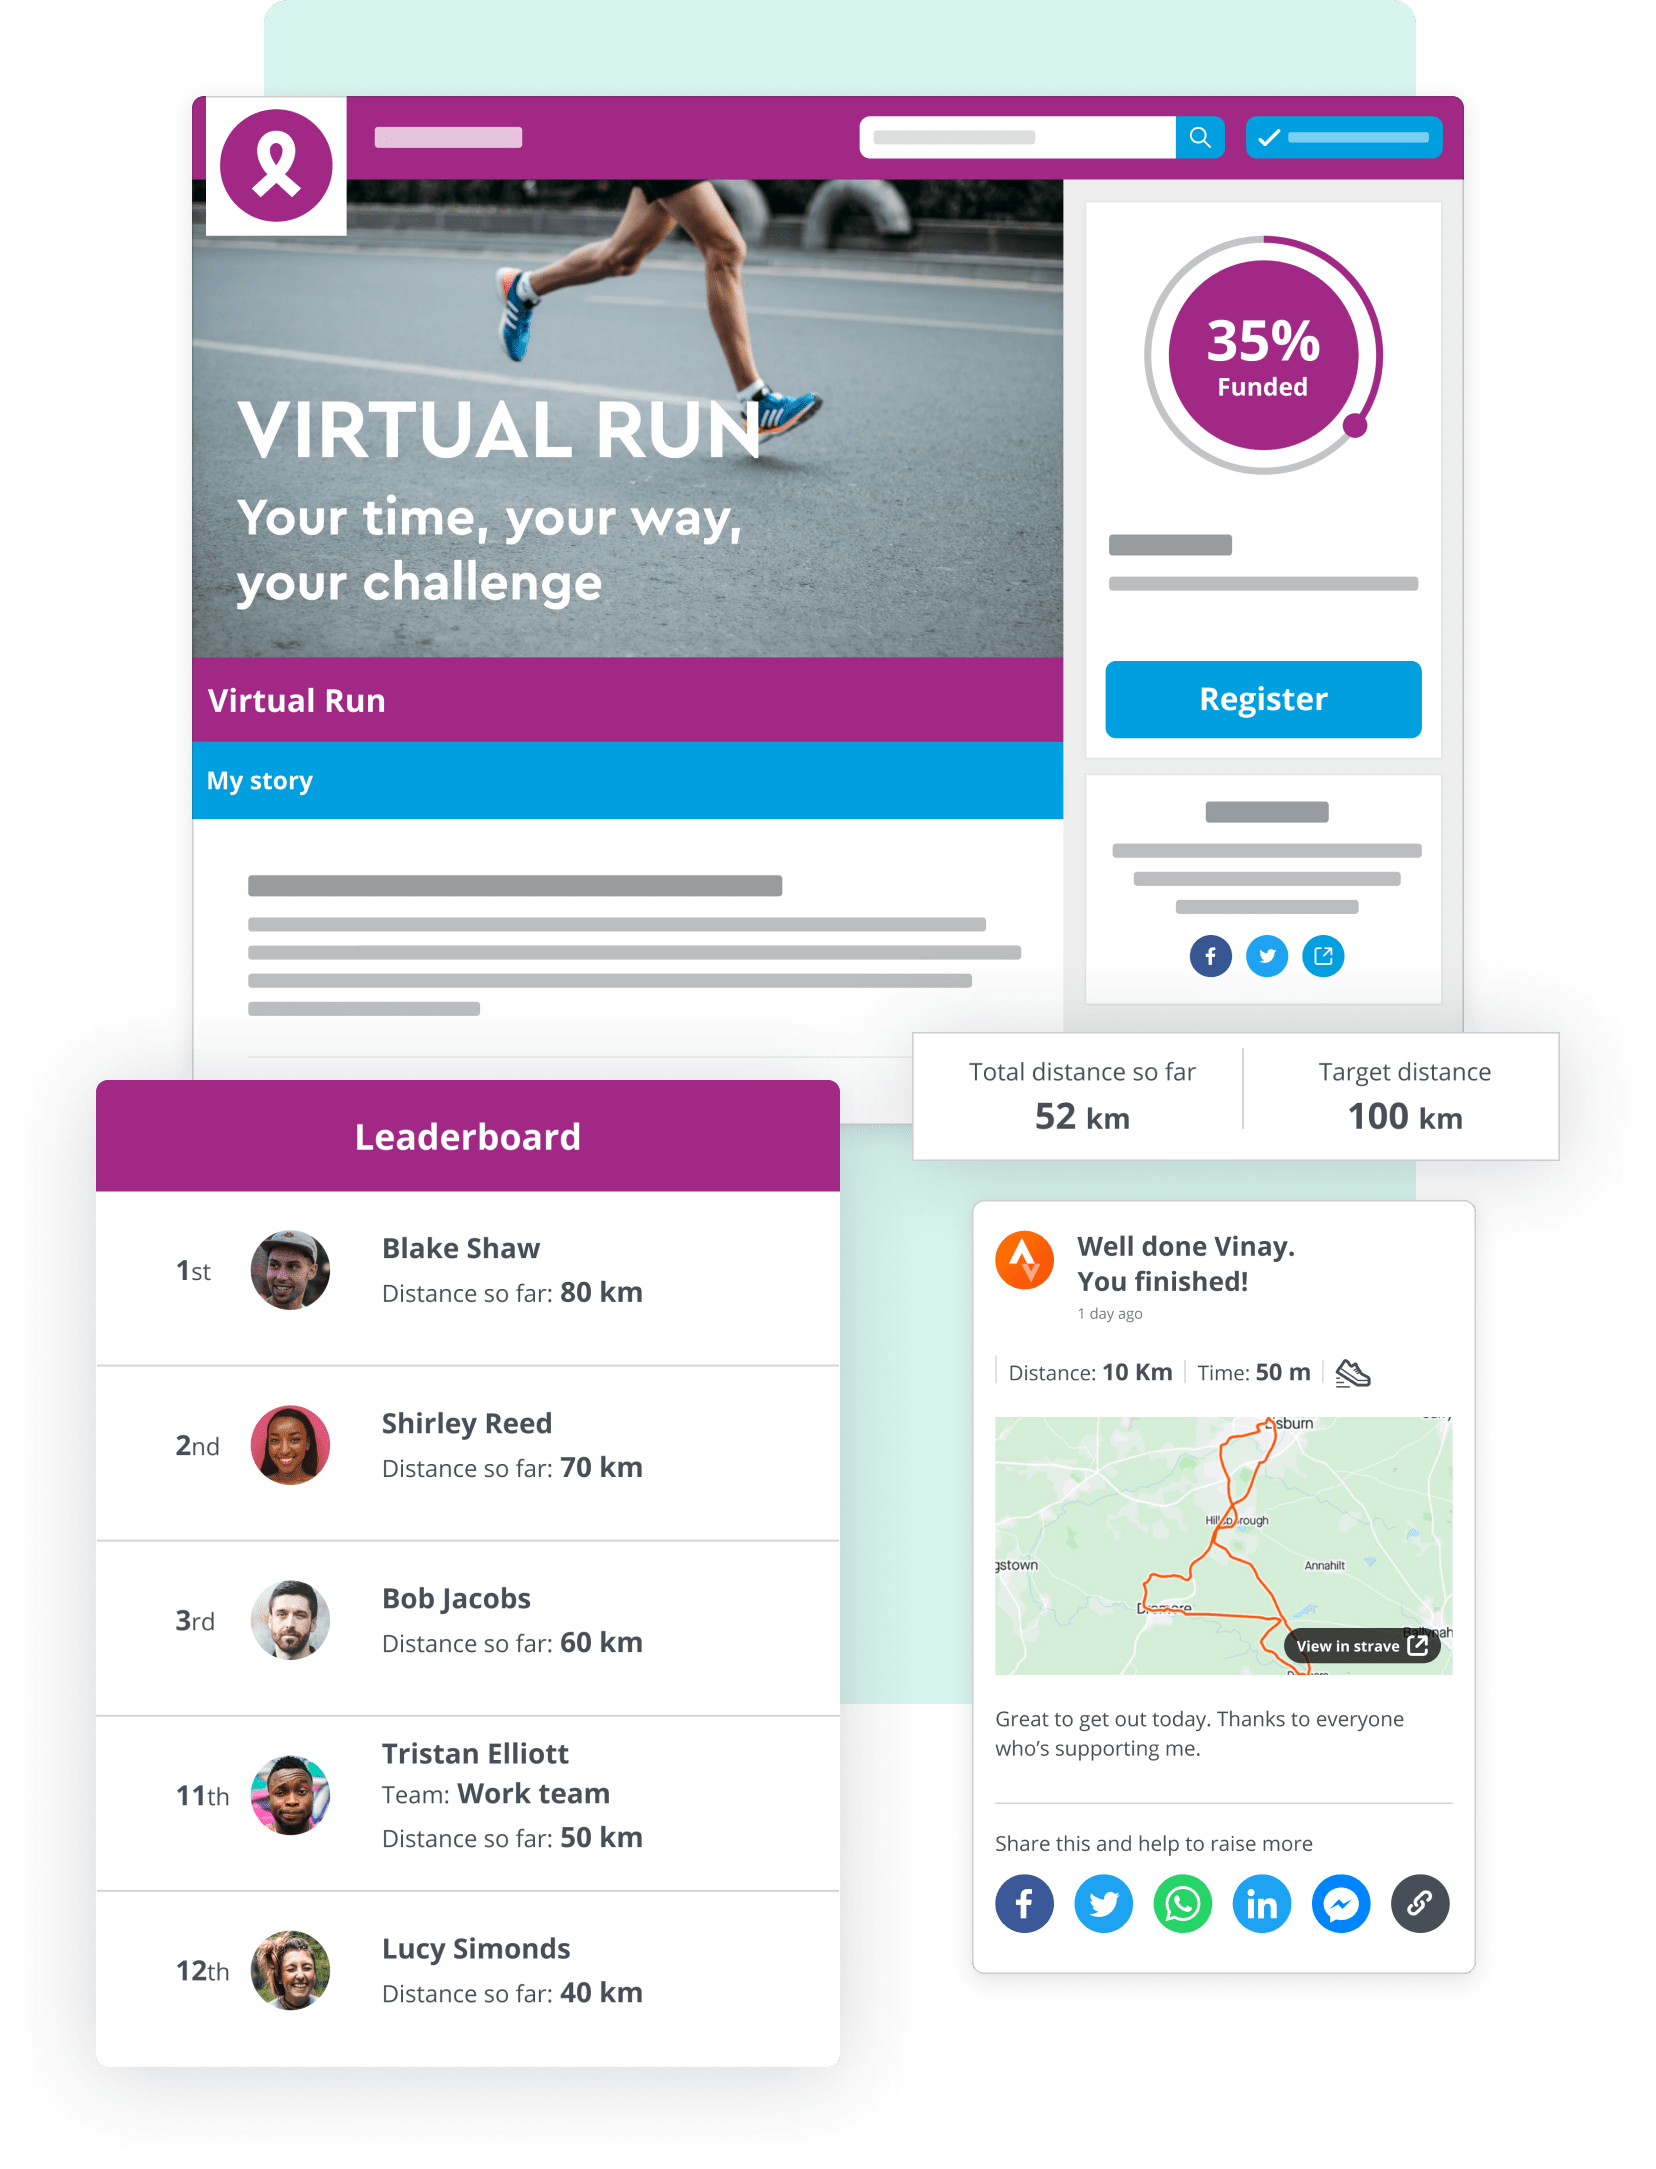 Enthuse virtual events - Race or target event formats, STRAVA integration, automated milestones, event leaderboards